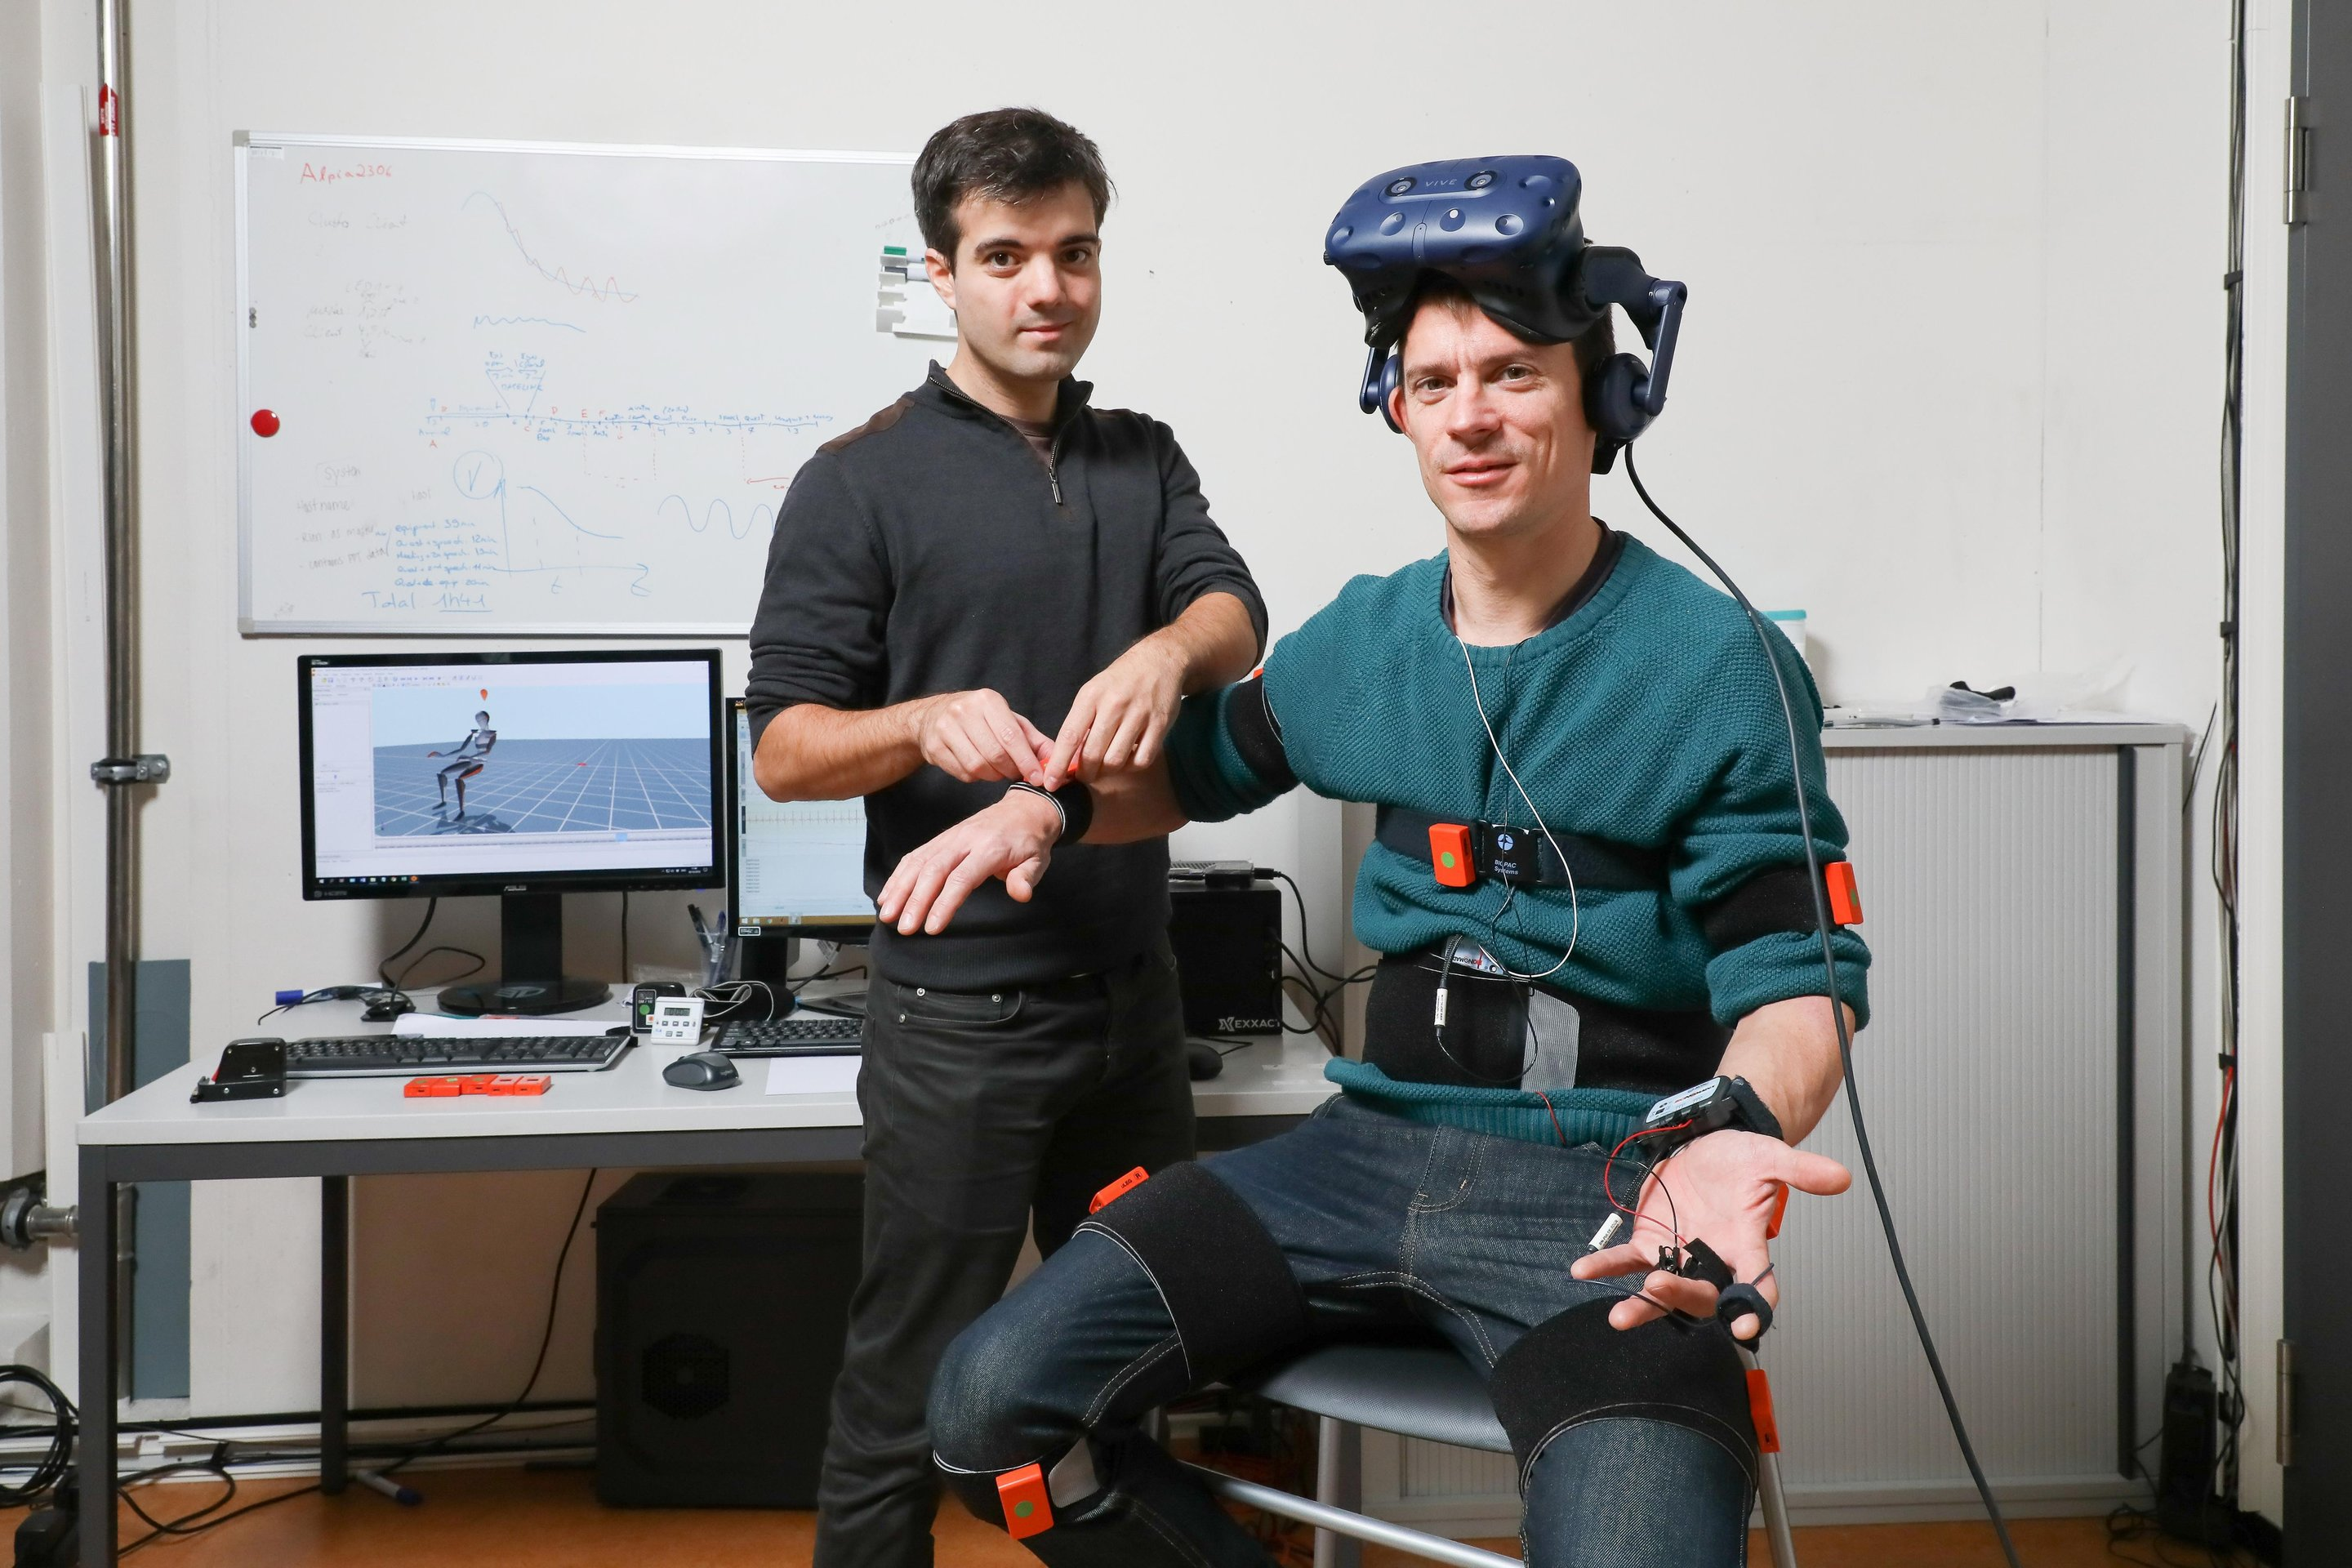 VRTIGO lets you test your nerves in virtual reality